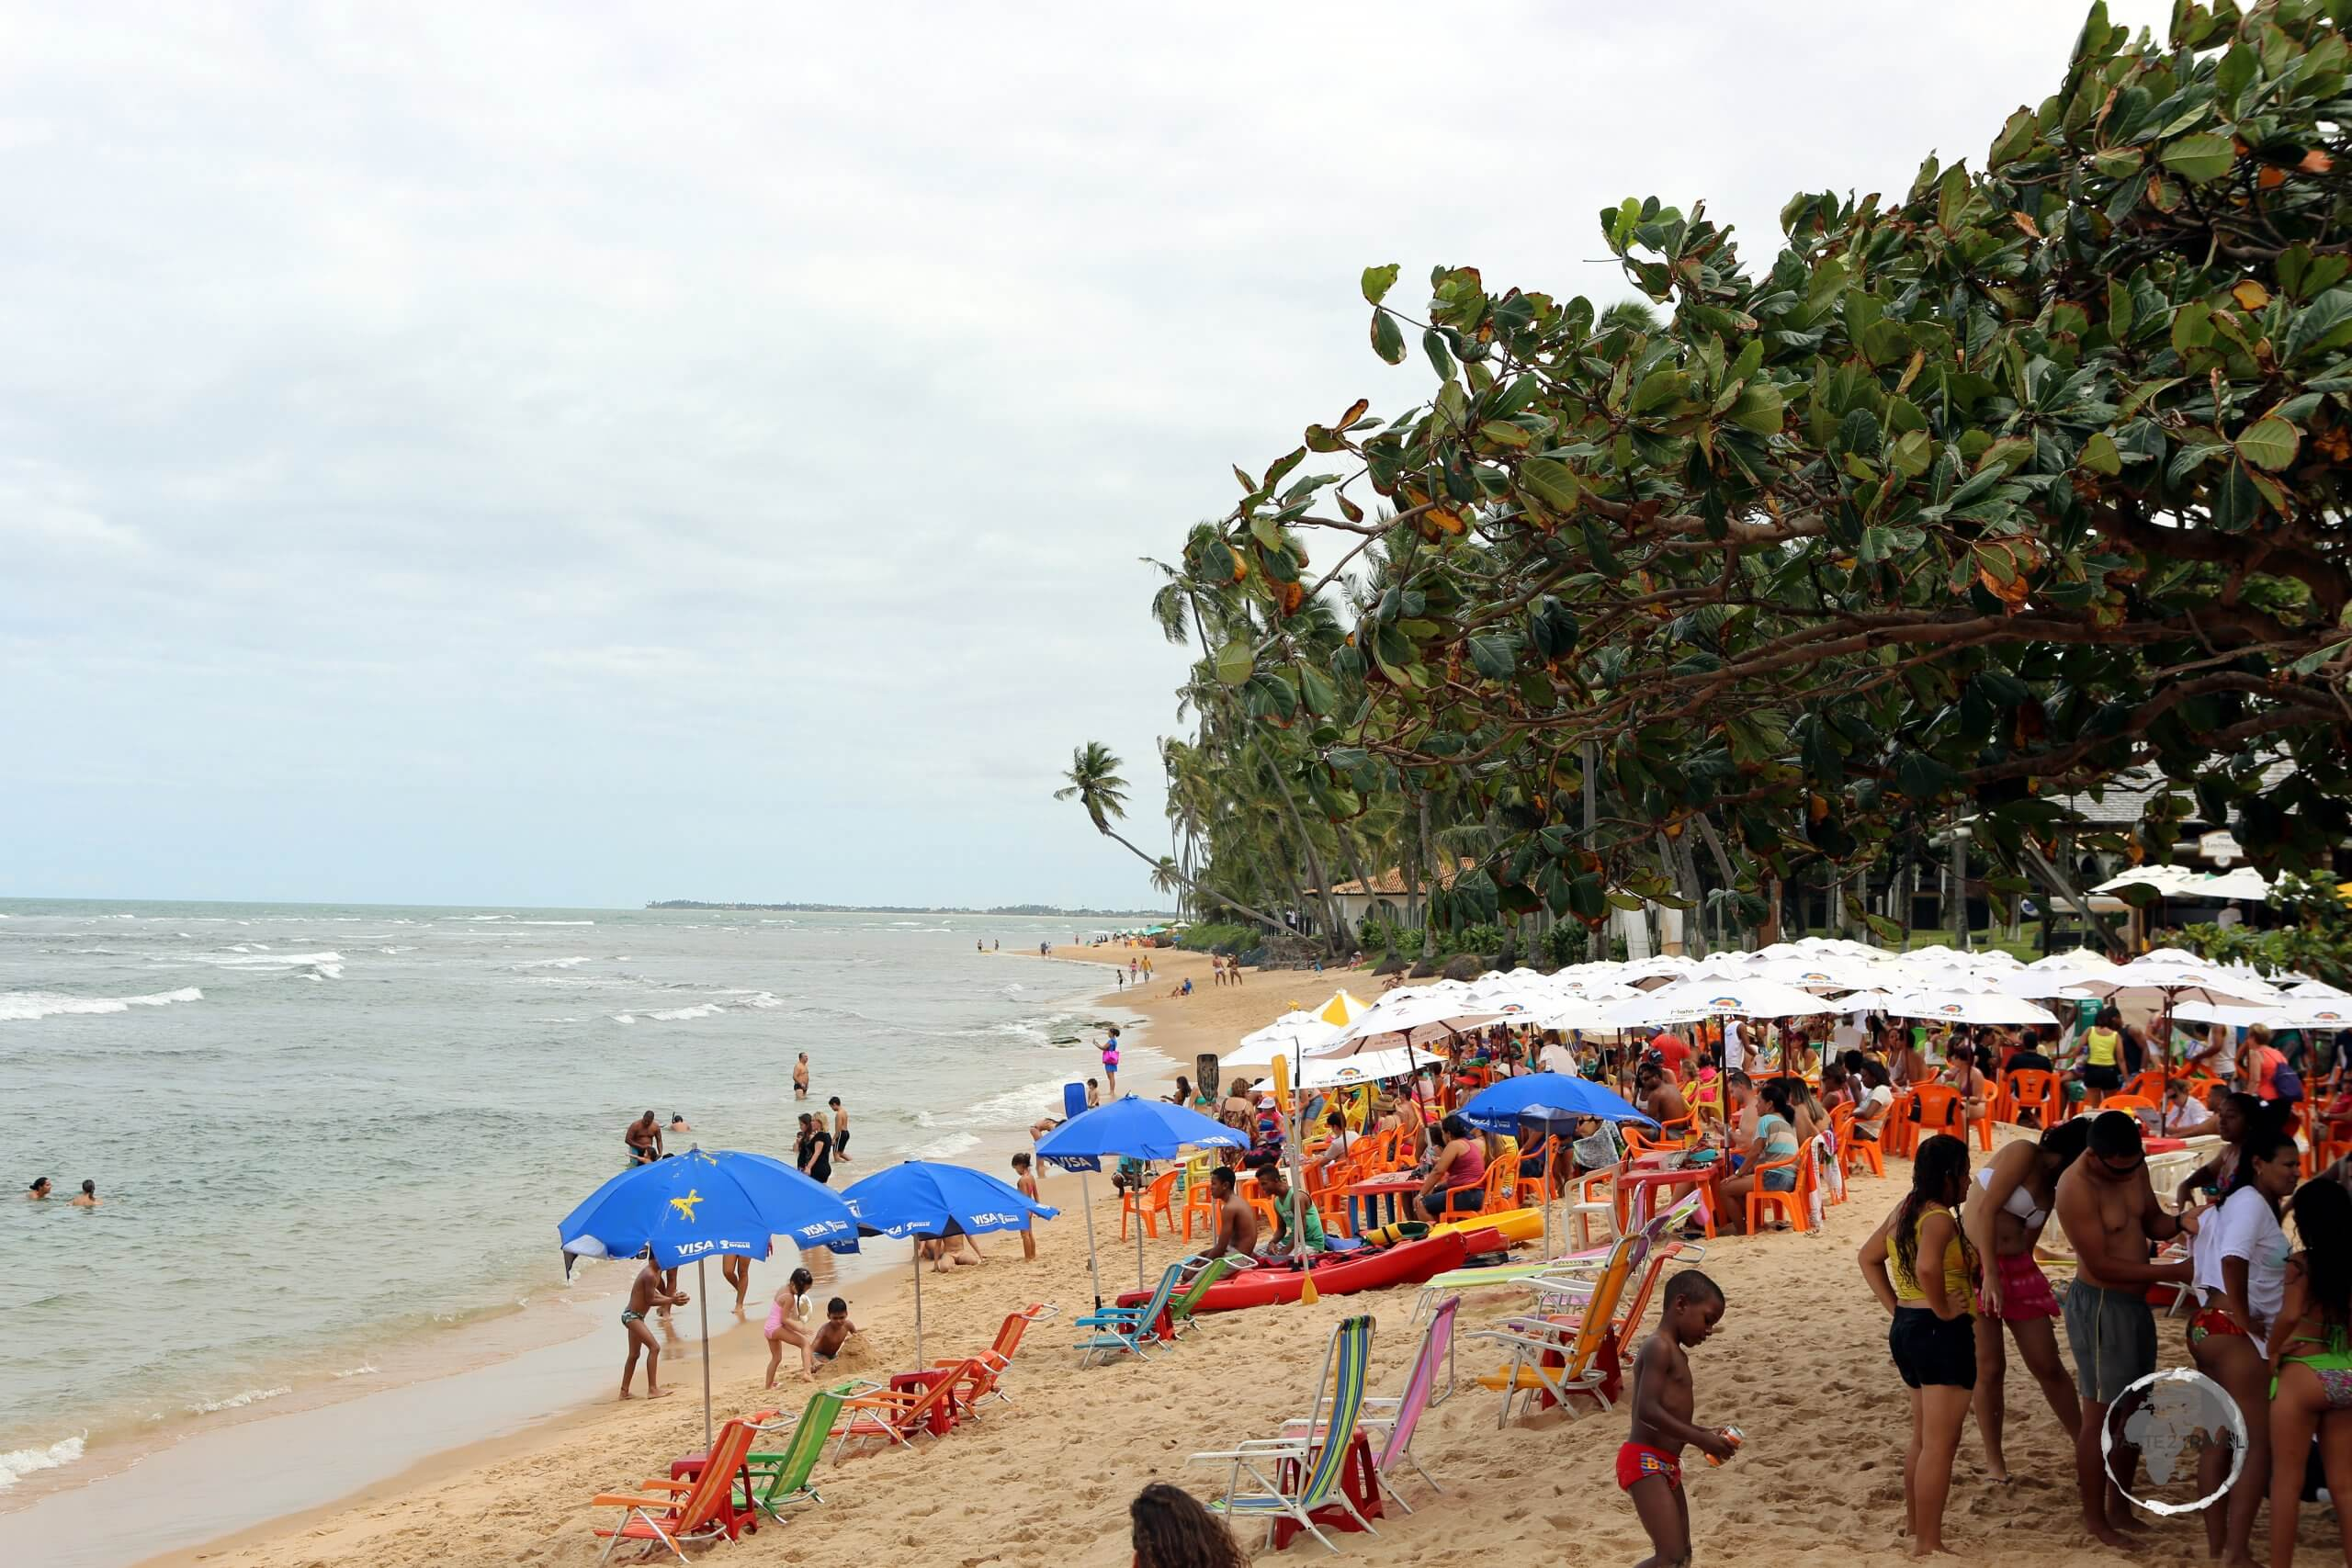 Praia do Forte is a long beach with a small village 80 km away from the city of Salvador de Bahia, located in north-eastern Brazil and facing the Atlantic Ocean.